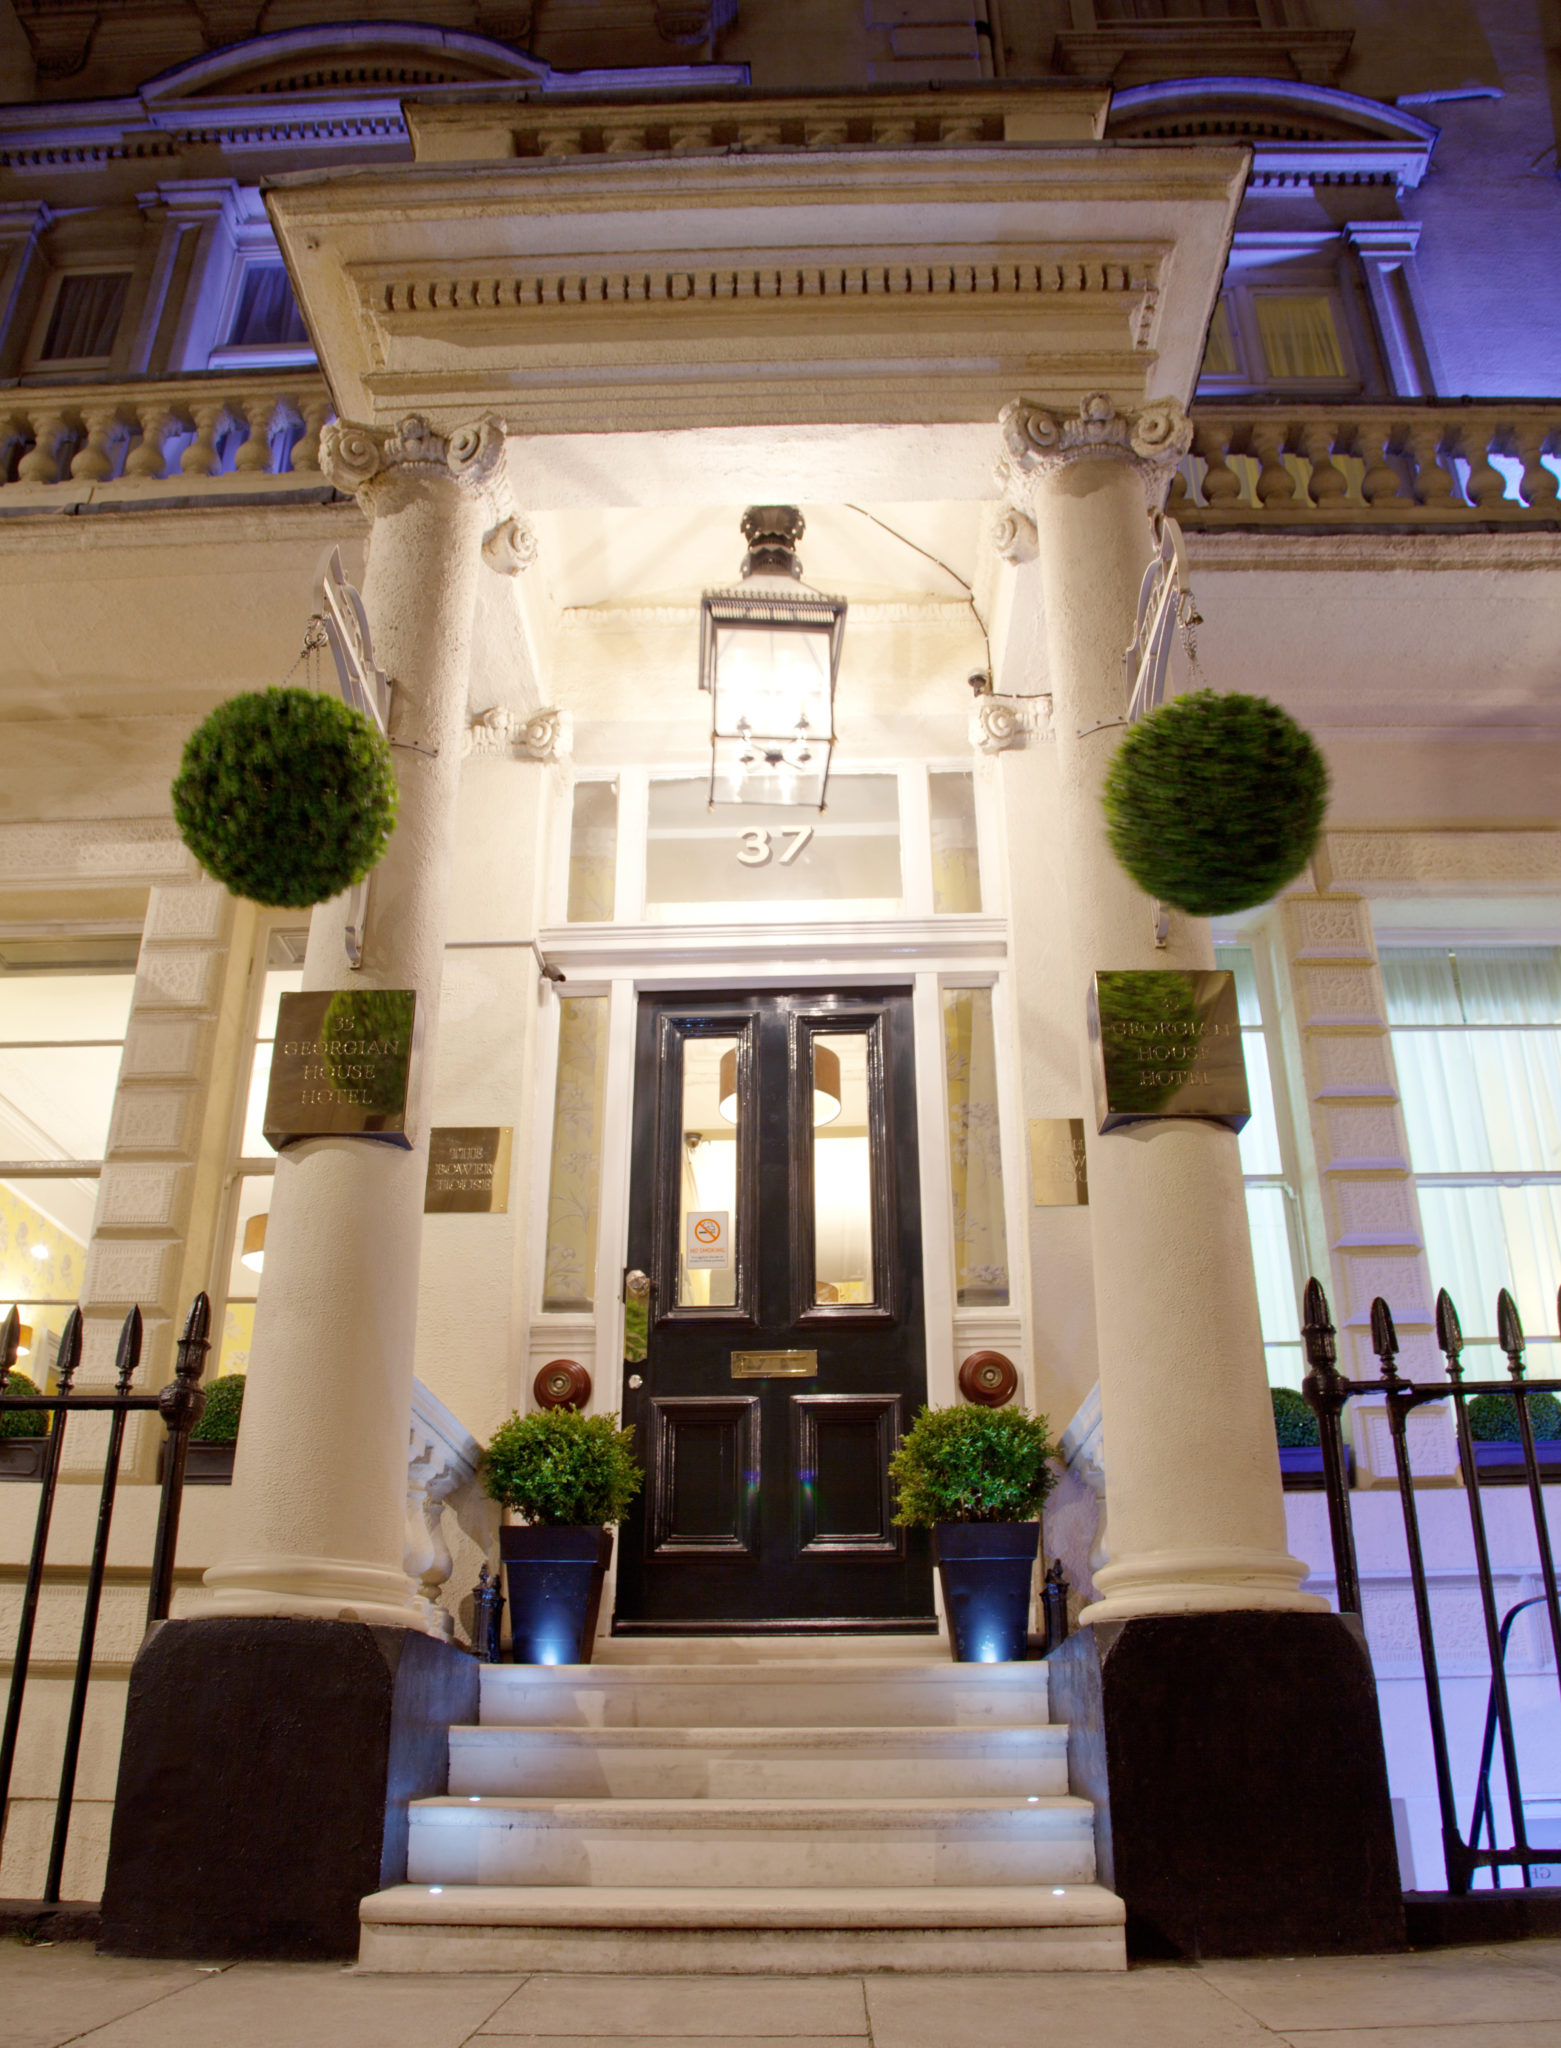 Hotel Georgian House Londra exclusive: georgian house hotel works its 'magic' and adds